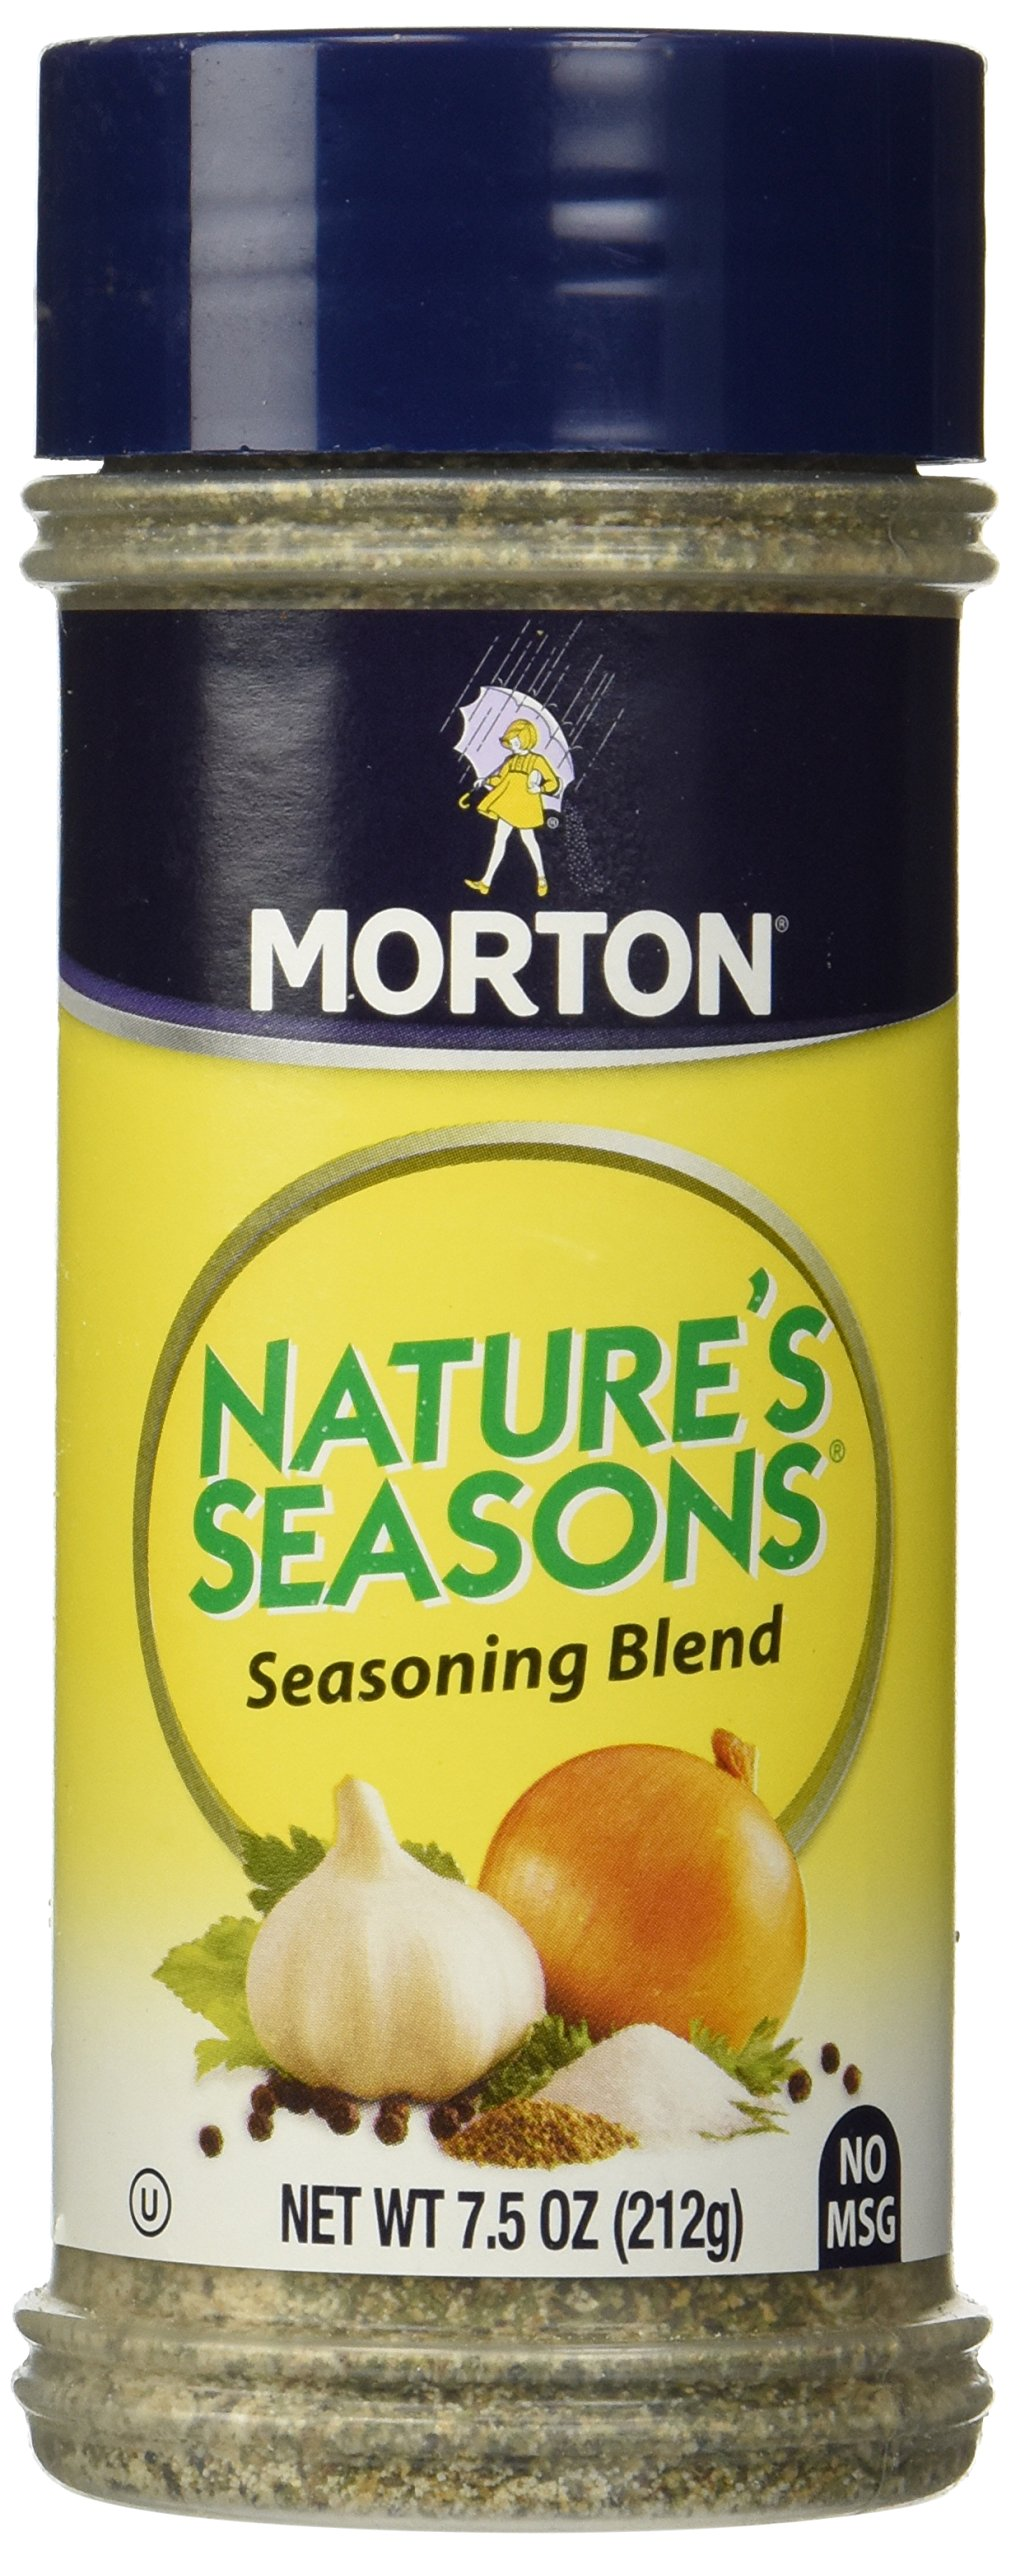 Morton S Nature S Seasons Seasoning Blend   Ounce